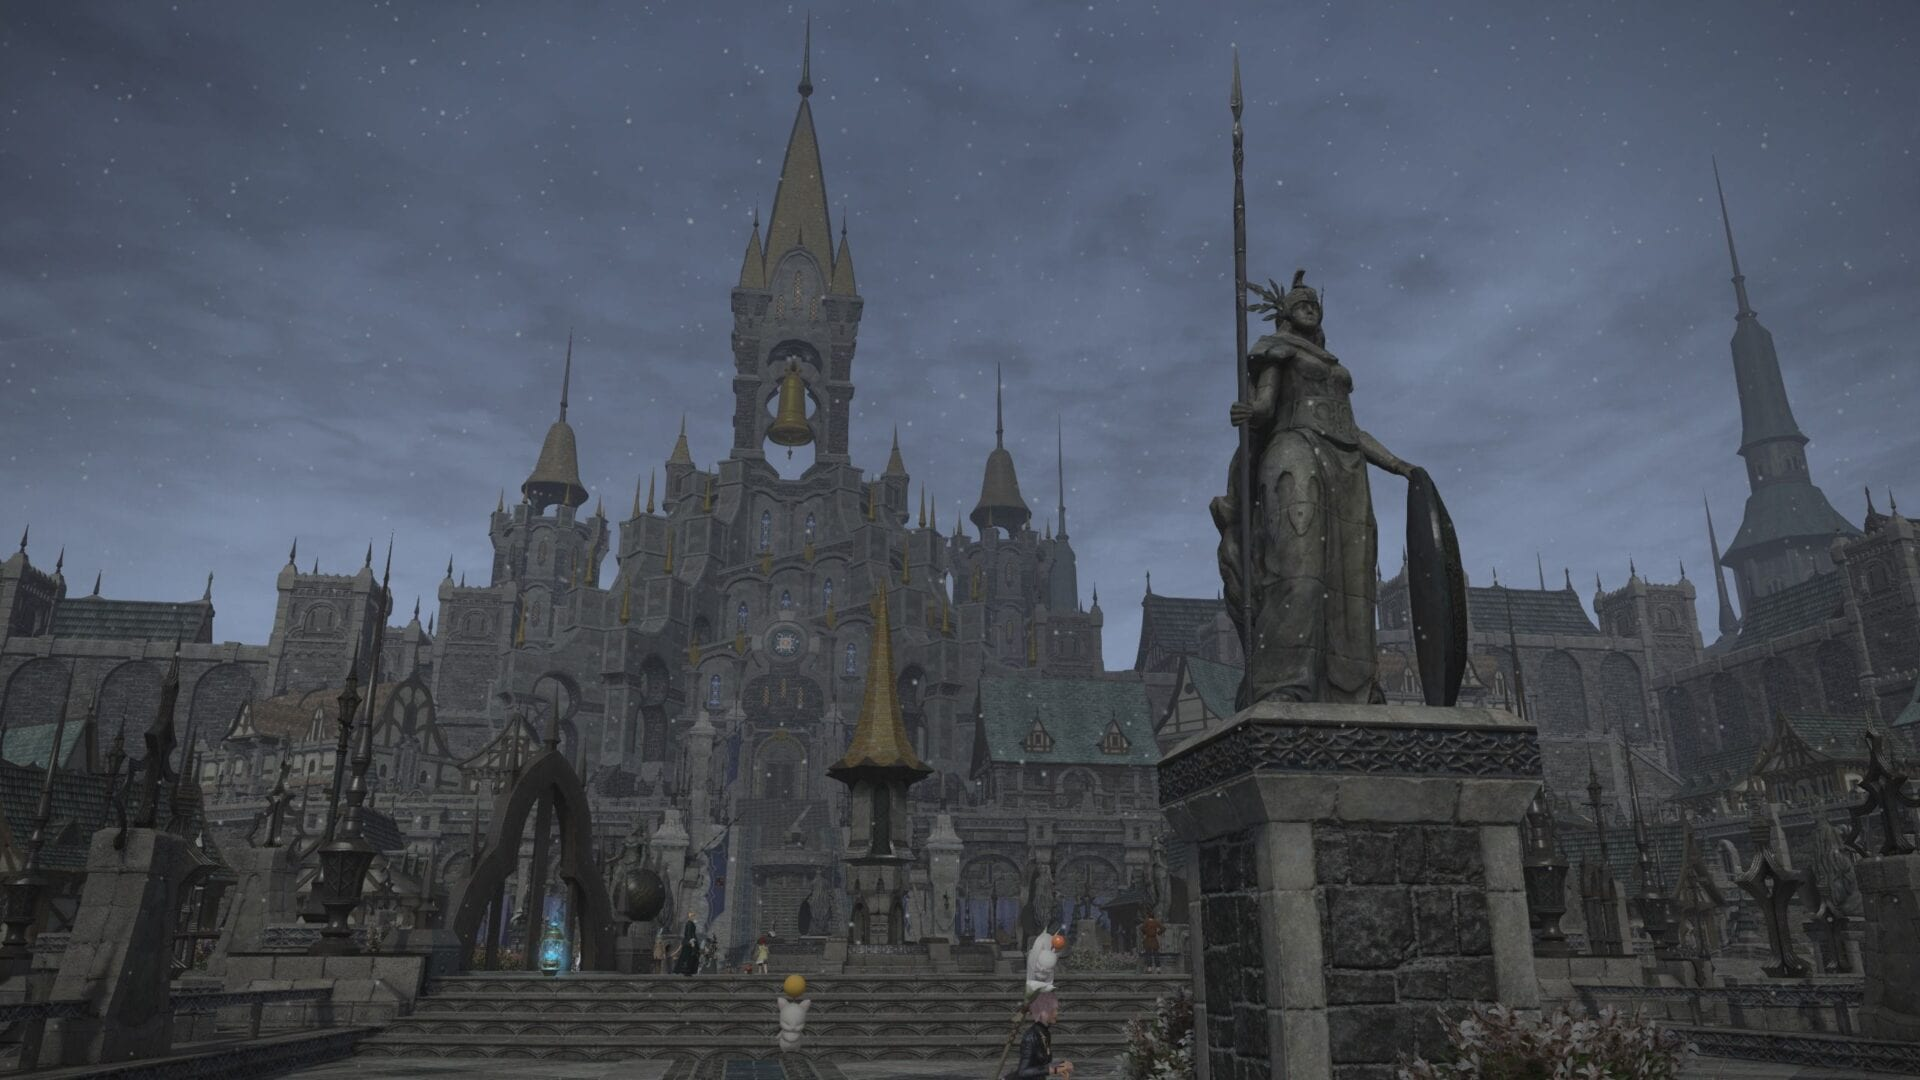 Final Fantasy XIV – Ishgardian Restoration End Shows First Taste of Ishgard Housing Wards & Sweet Spa